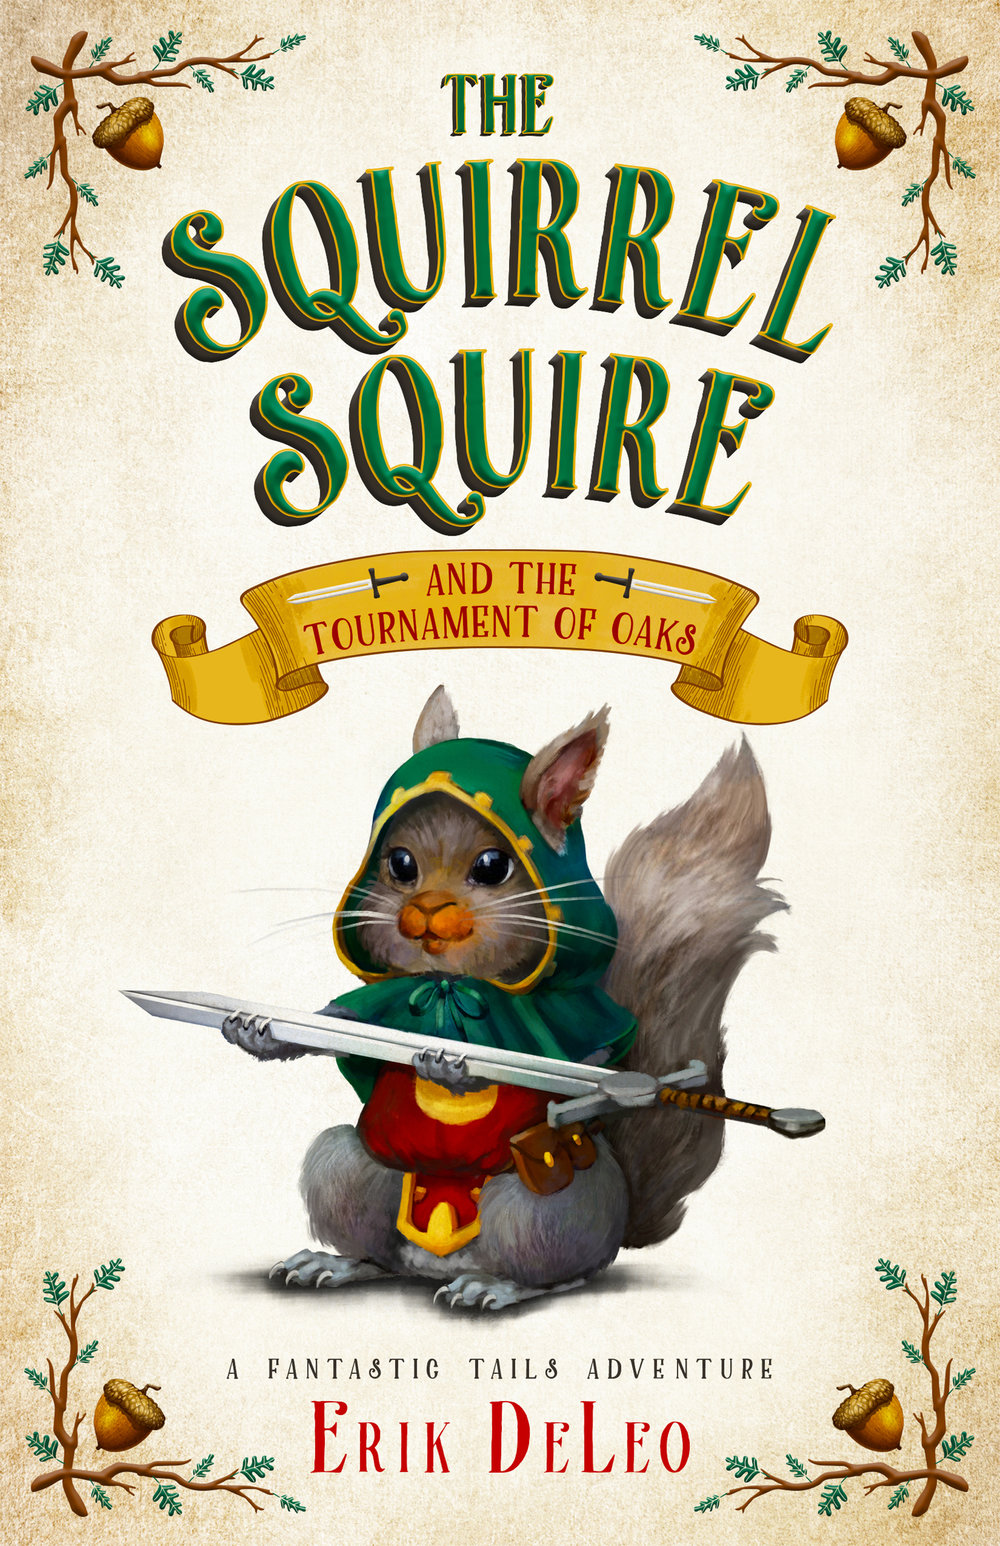 Squirrel Squire Hi Res BIG.jpg